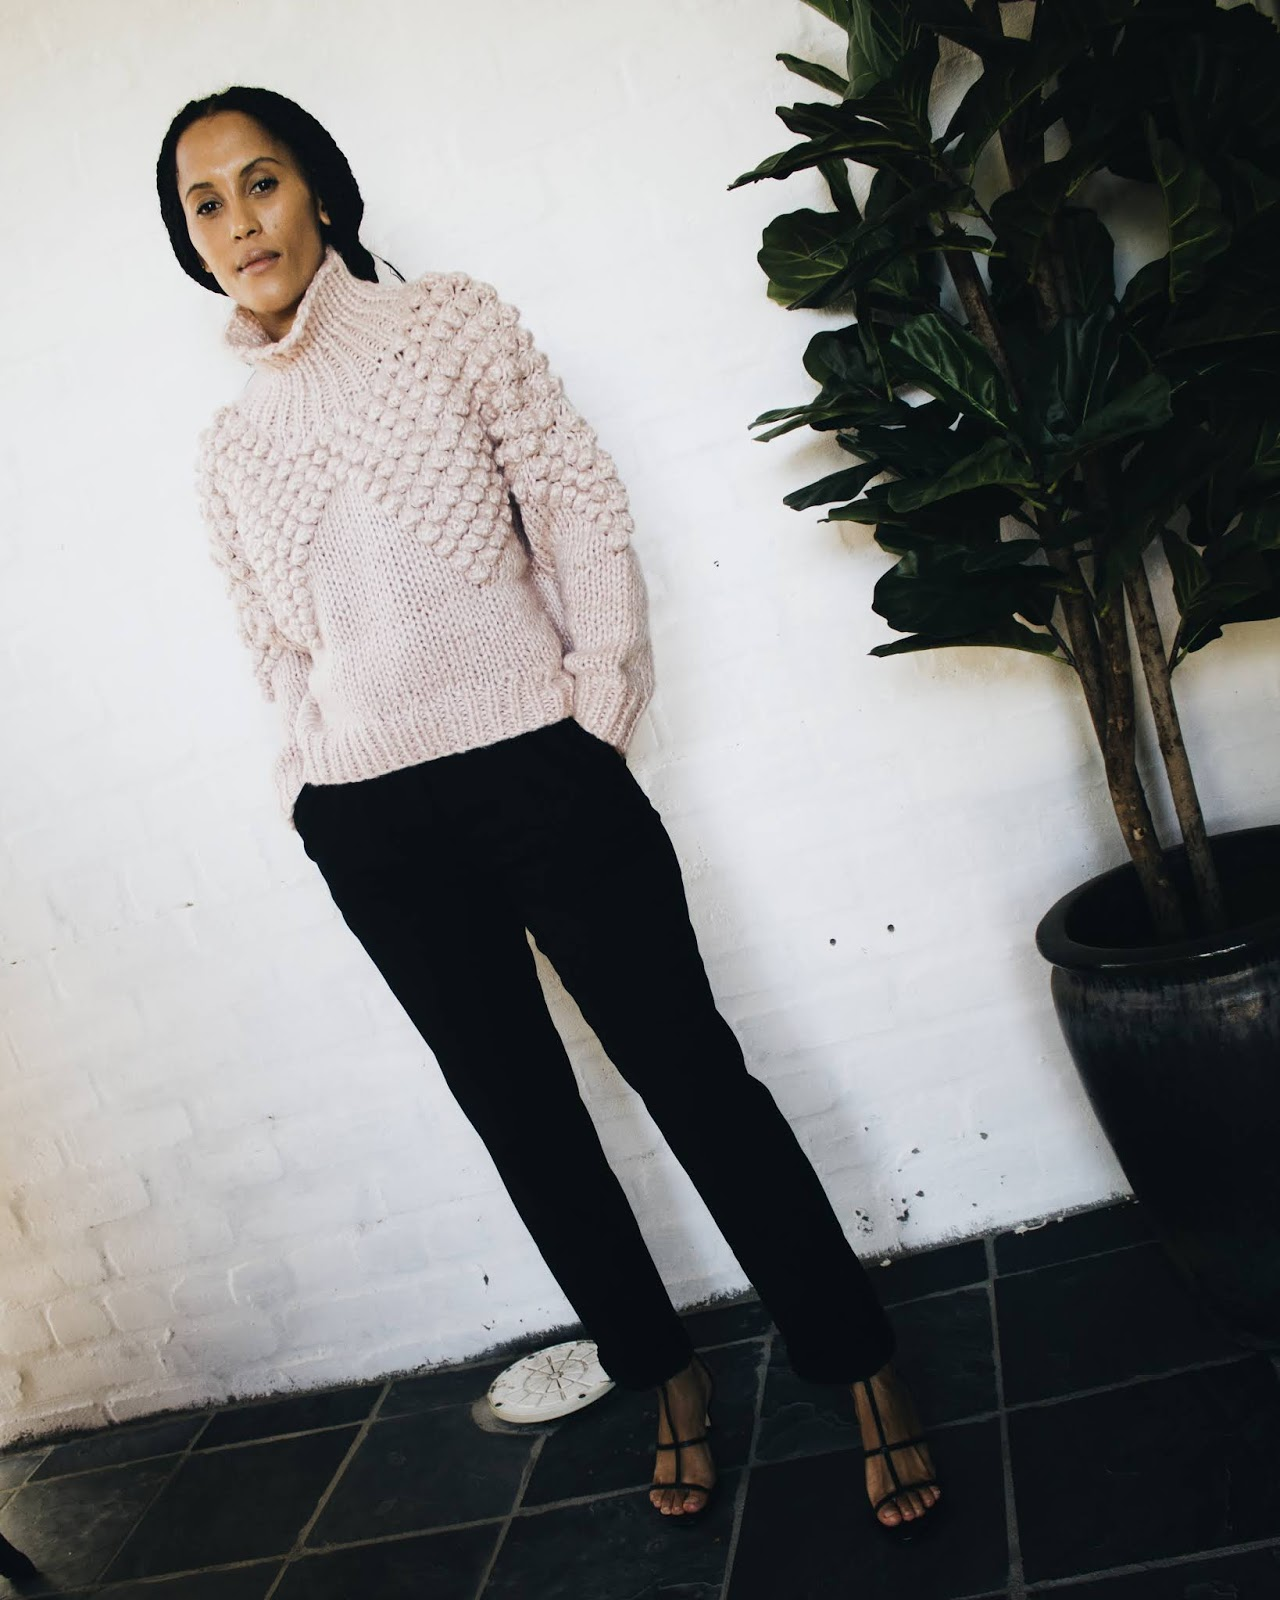 Liezel-Esquire-how-to-style-pom-pom-knit-sweater